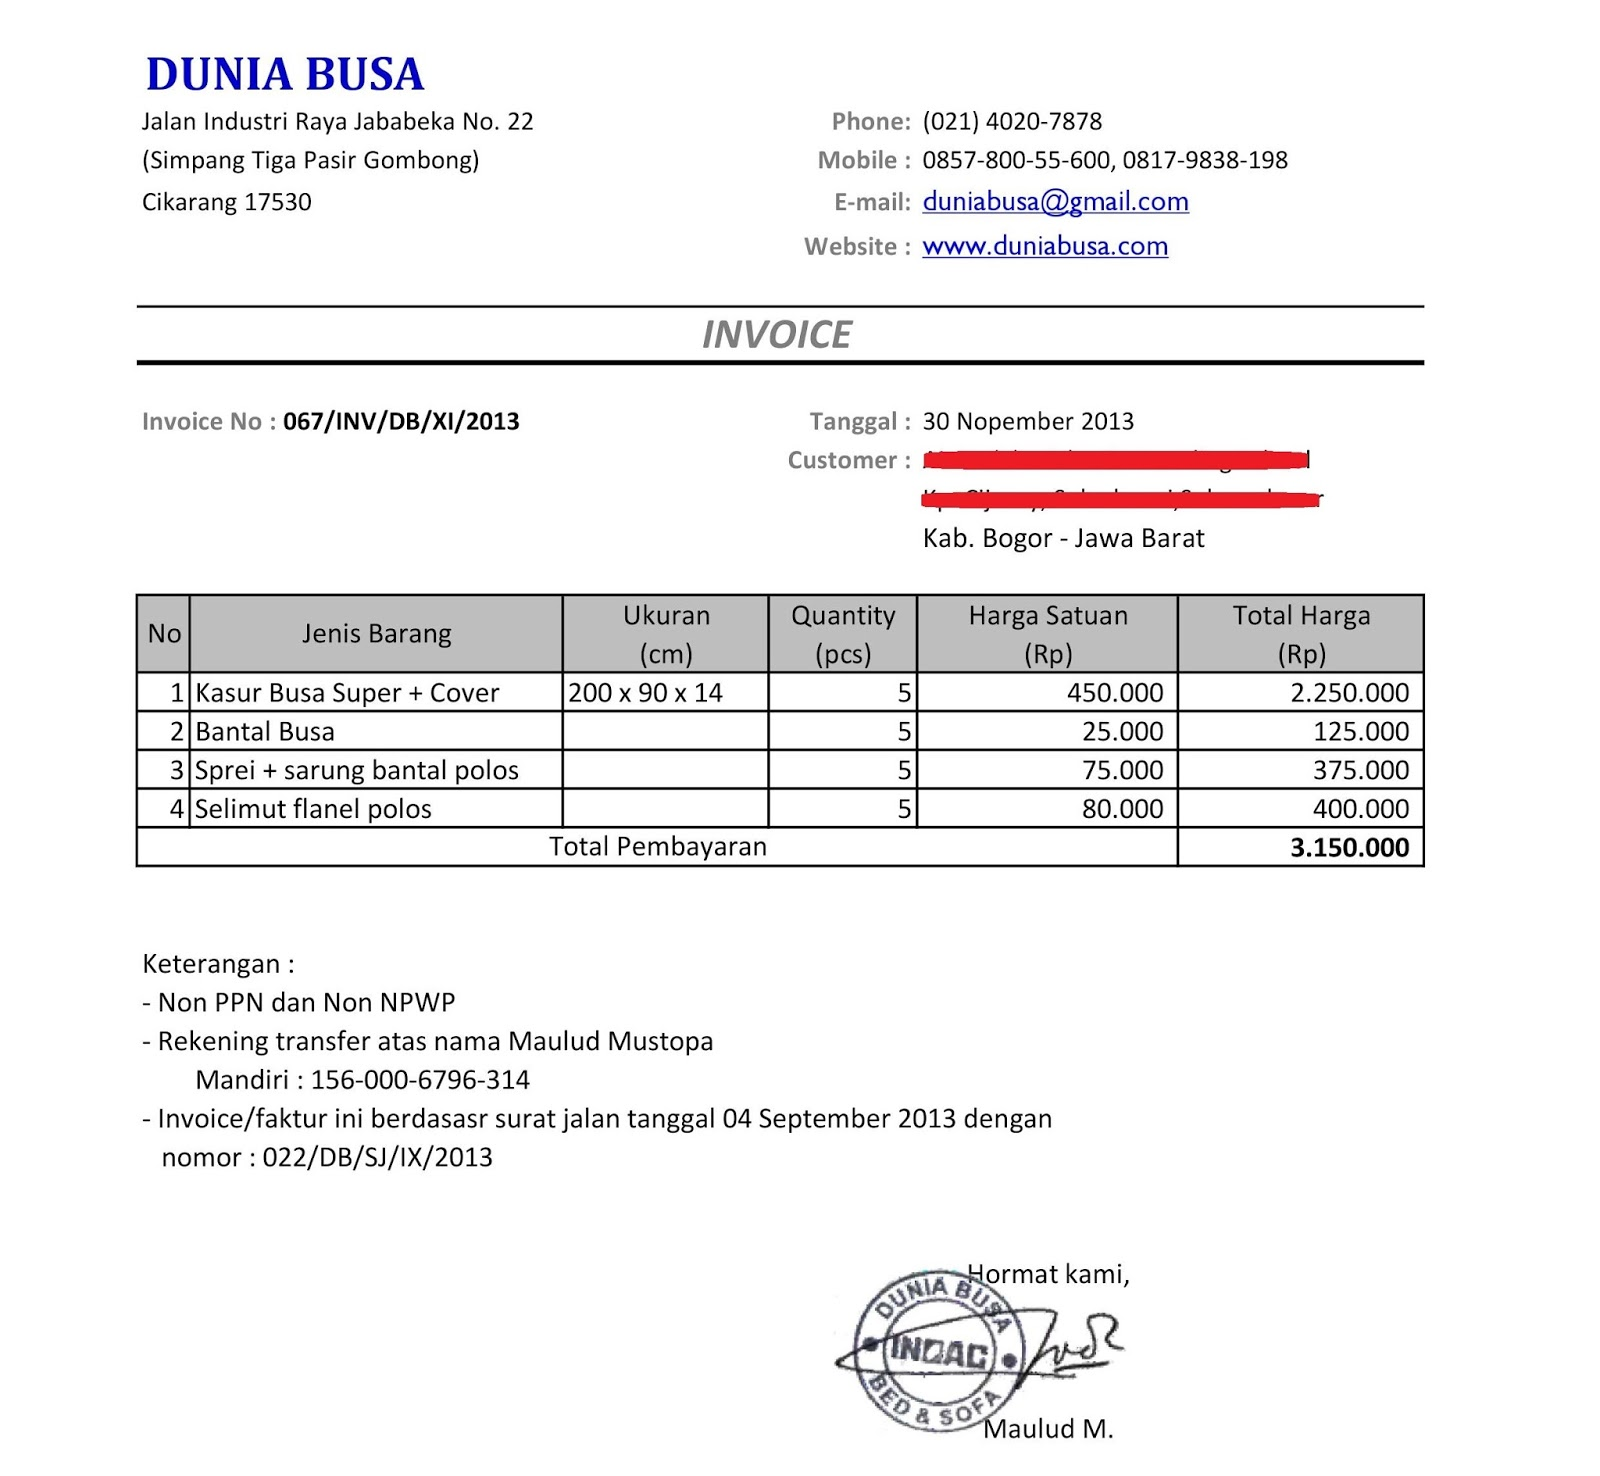 Helpingtohealus  Splendid Free Invoice Online  Create Invoice Online  Invoice Template  With Marvelous Contoh Format Invoice Atau Surat Tagihan  Brankas Arsip  Free Invoice Online With Lovely Free Business Invoice Template Also Toyota Tacoma Invoice Price In Addition Free Printable Invoices Online And Mobile Invoicing App As Well As Automotive Repair Invoice Additionally How To Make An Invoice On Excel From Sklepco With Helpingtohealus  Marvelous Free Invoice Online  Create Invoice Online  Invoice Template  With Lovely Contoh Format Invoice Atau Surat Tagihan  Brankas Arsip  Free Invoice Online And Splendid Free Business Invoice Template Also Toyota Tacoma Invoice Price In Addition Free Printable Invoices Online From Sklepco